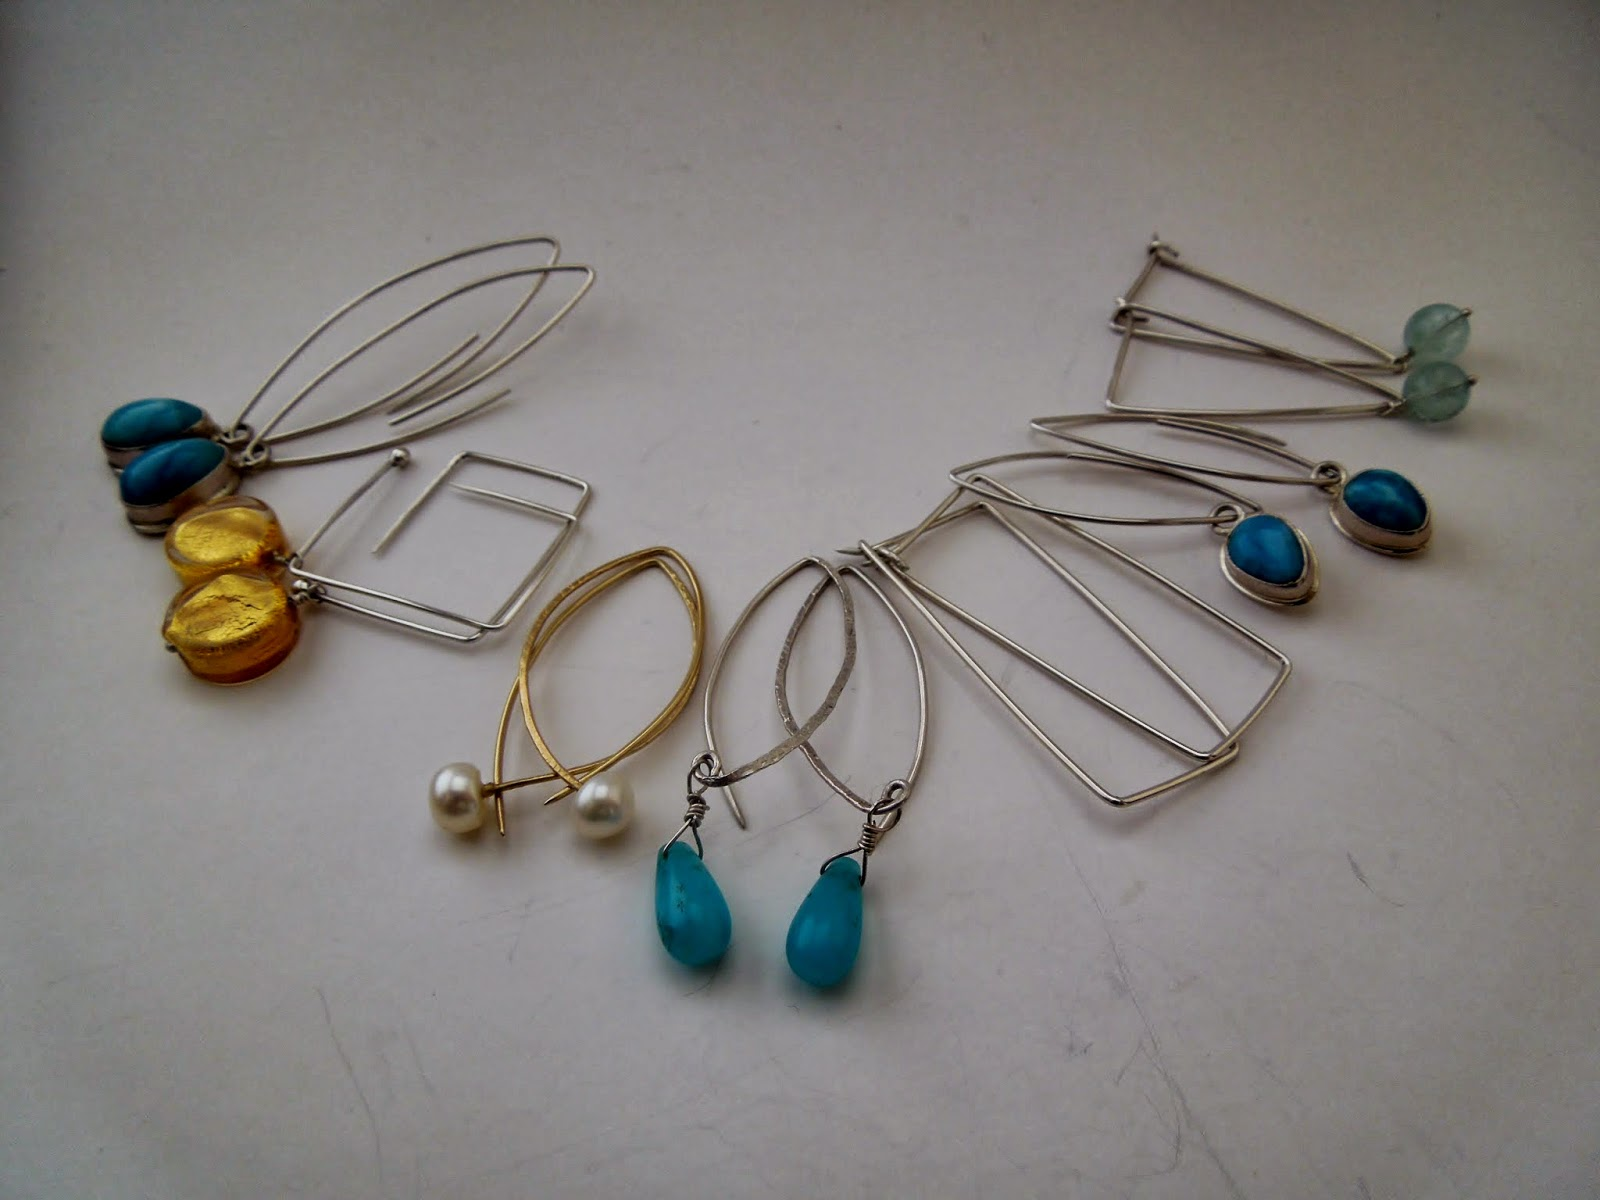 Hanna Peleg Jewelry: Wire hoops & Wire earrings